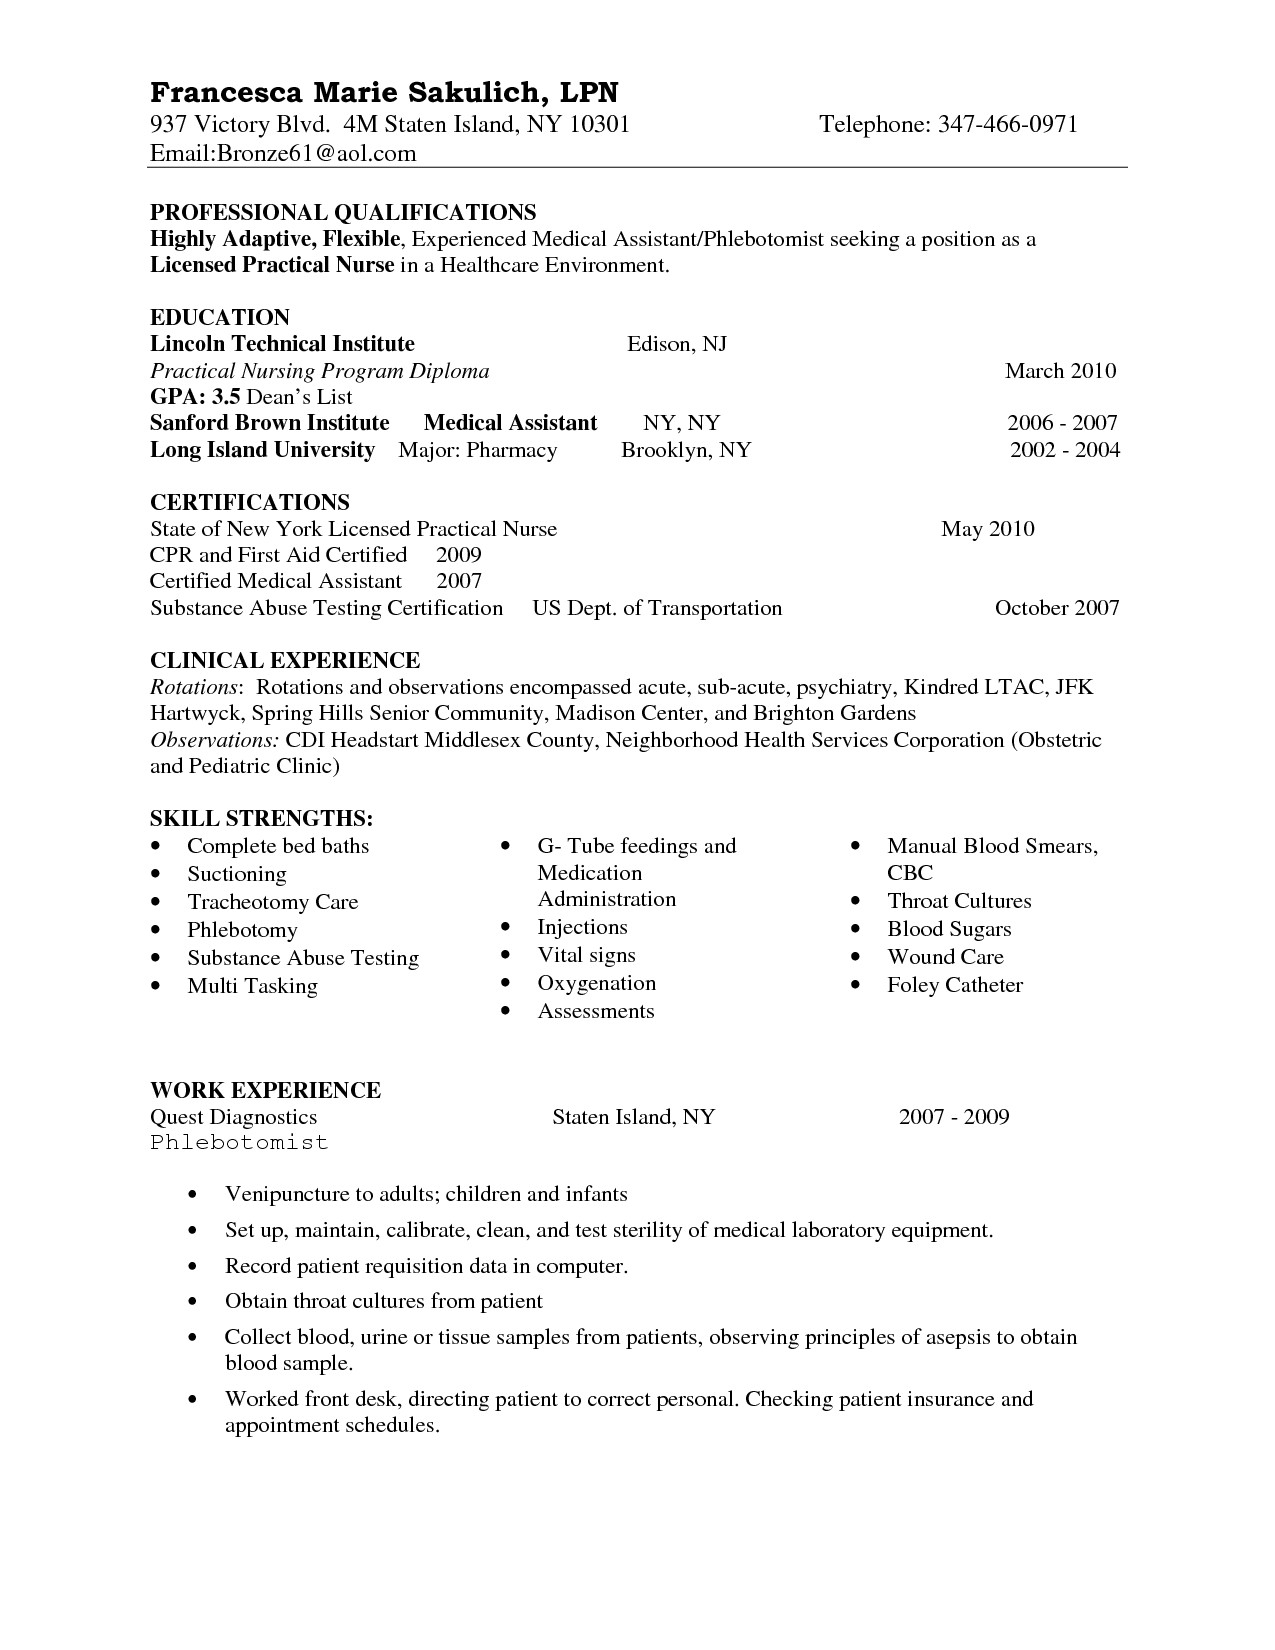 lpn nursing resume template example-New Grad Nursing Resume Template 18 New Grad Nursing Resume Template 20-o